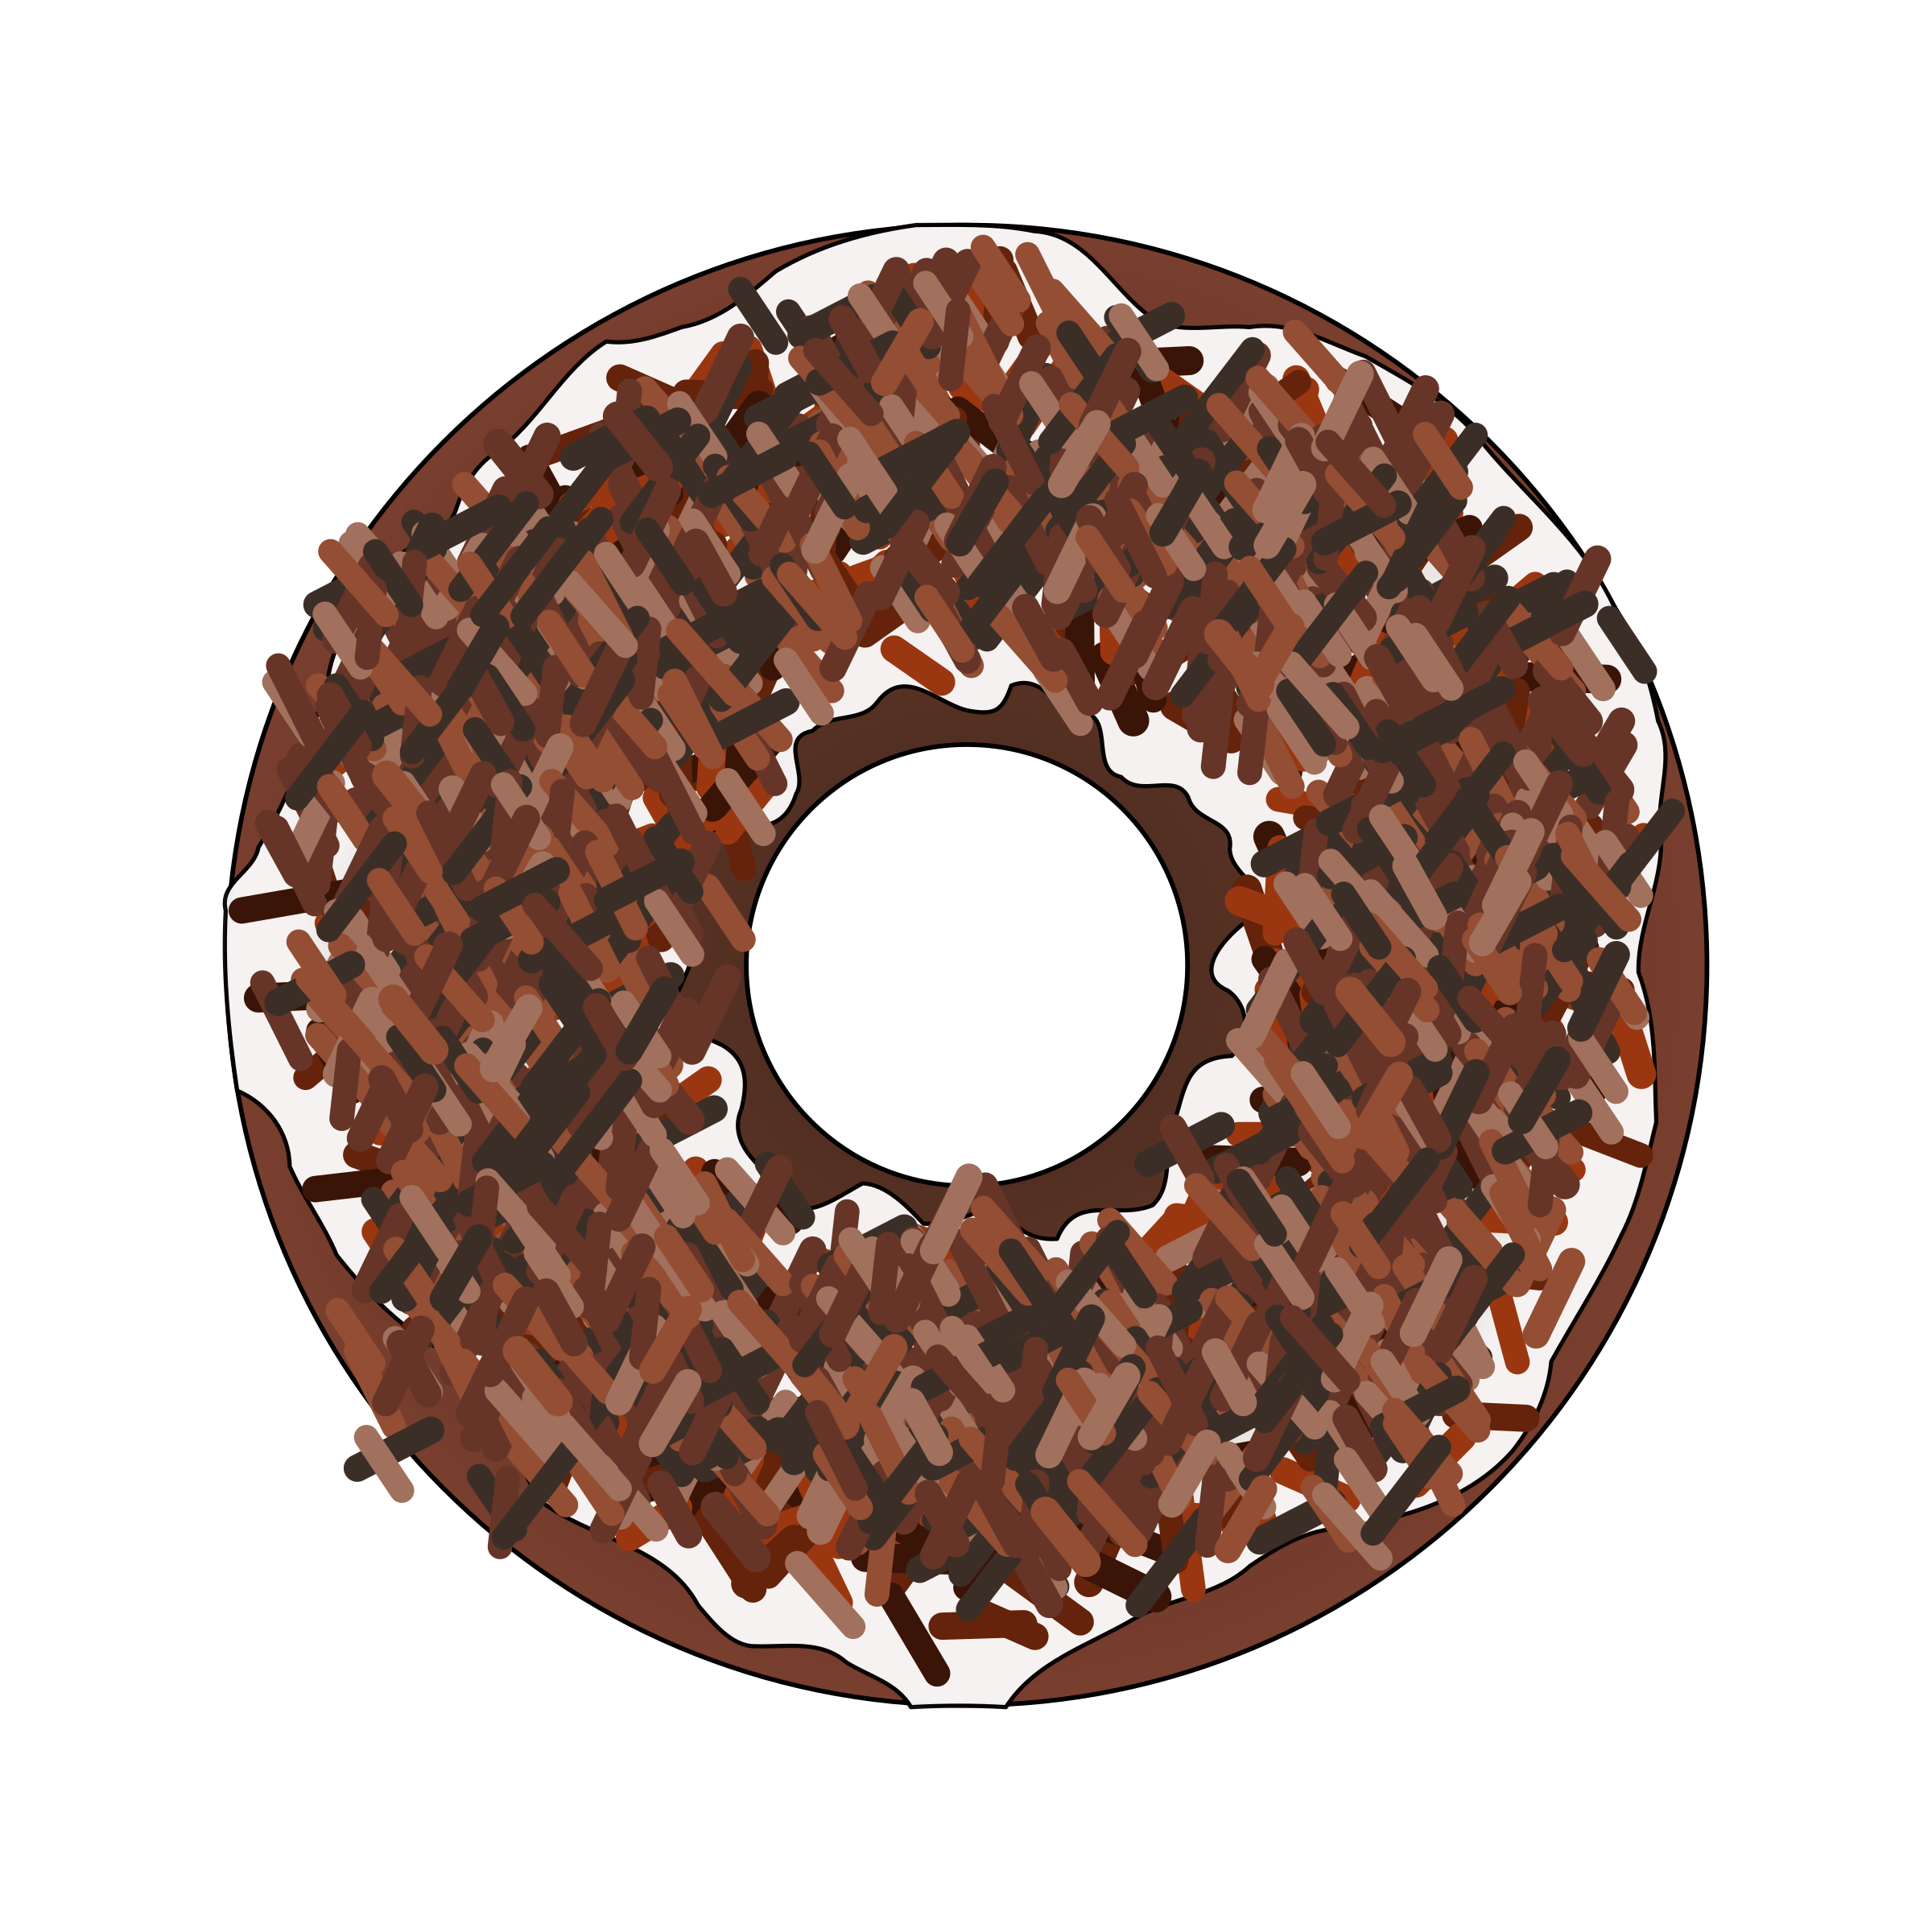 clip art library download Vector donut chocolate sprinkle. Too many brown sprinkles